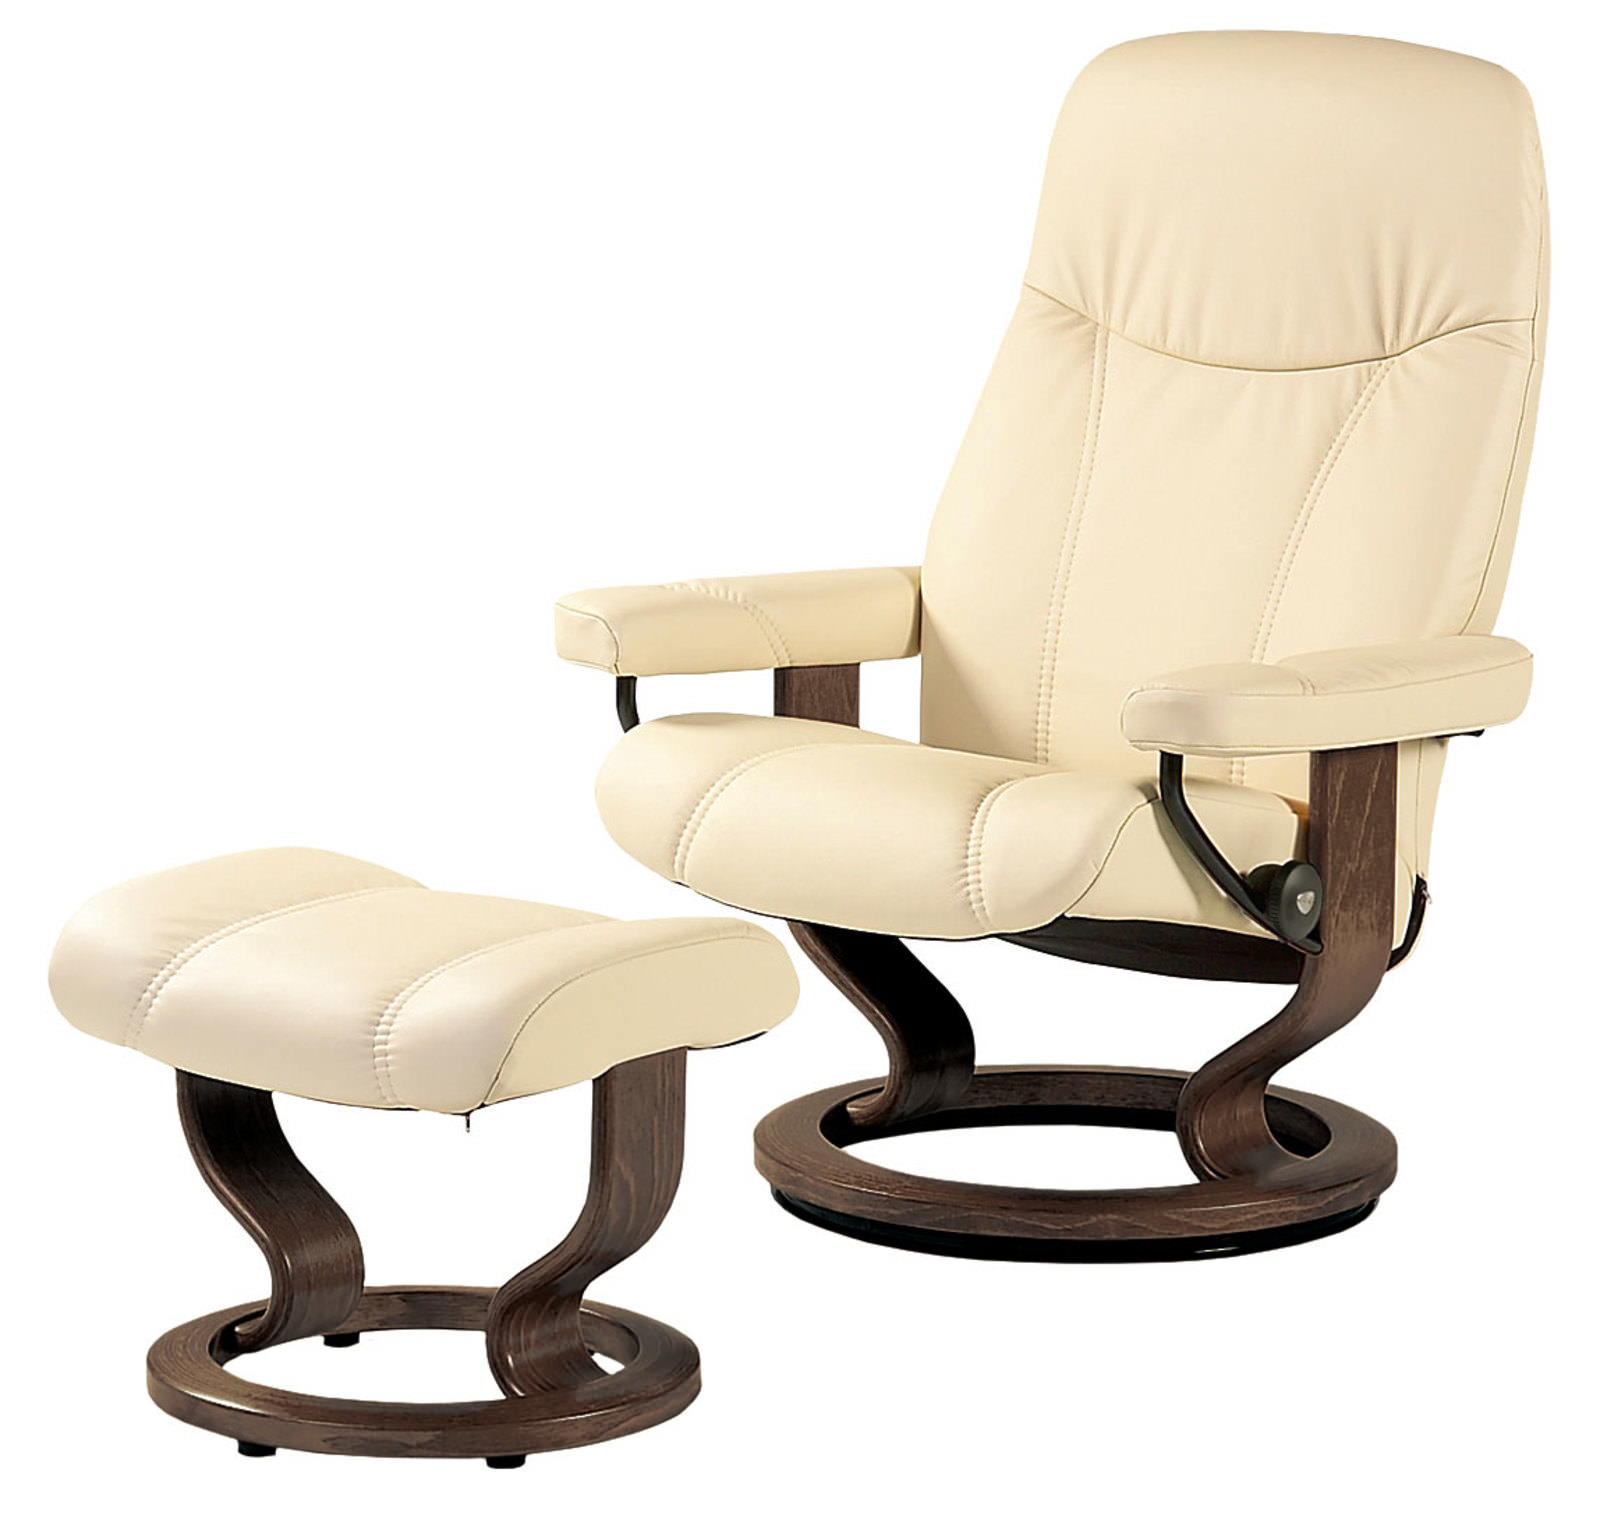 Relaxsessel Stressless Ohne Hocker Ekornes Sessel Latest Stressless Magic Classic Ein Sessel